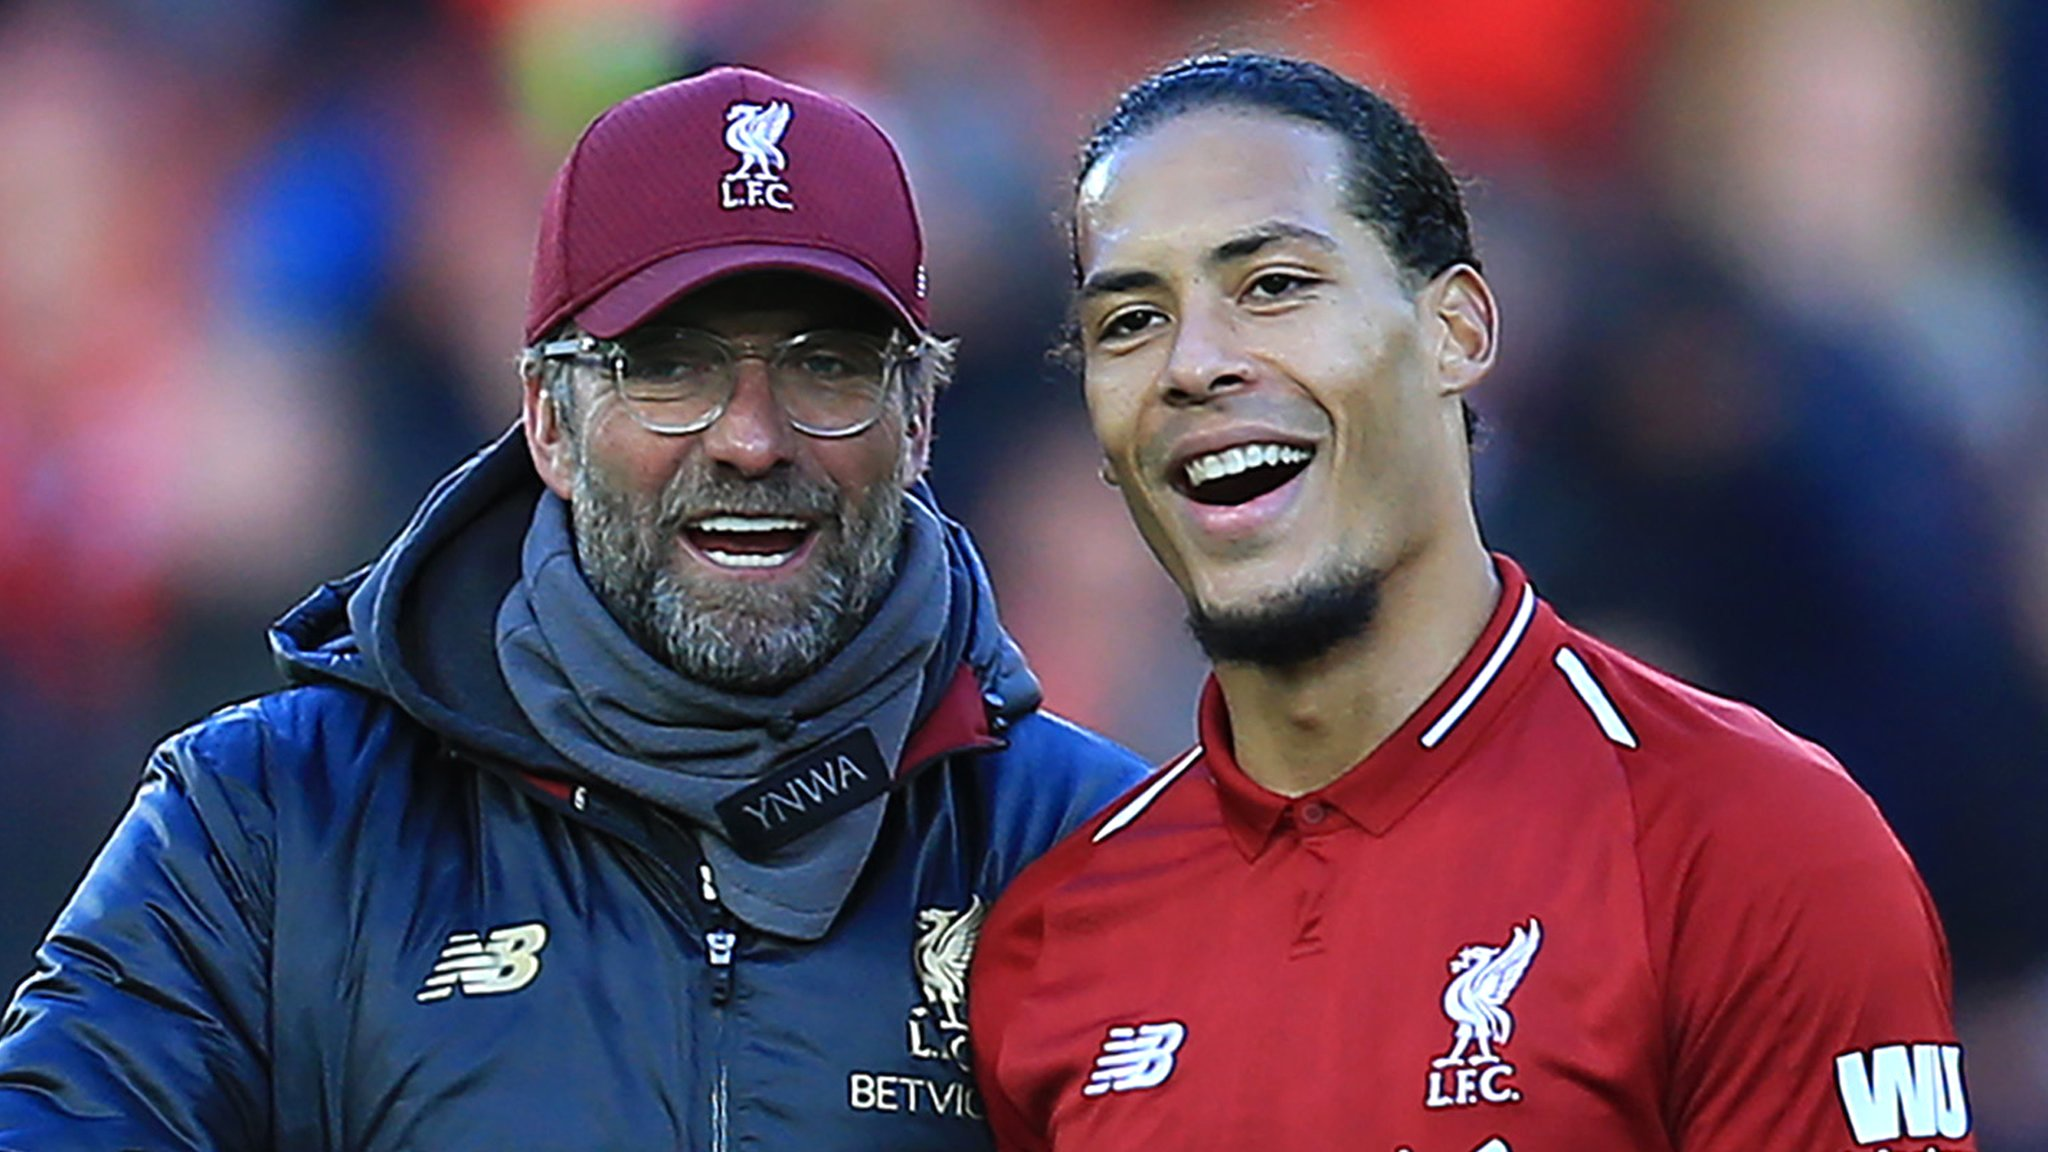 Liverpool: Jurgen Klopp is manager of month as Virgil van Dijk wins player award